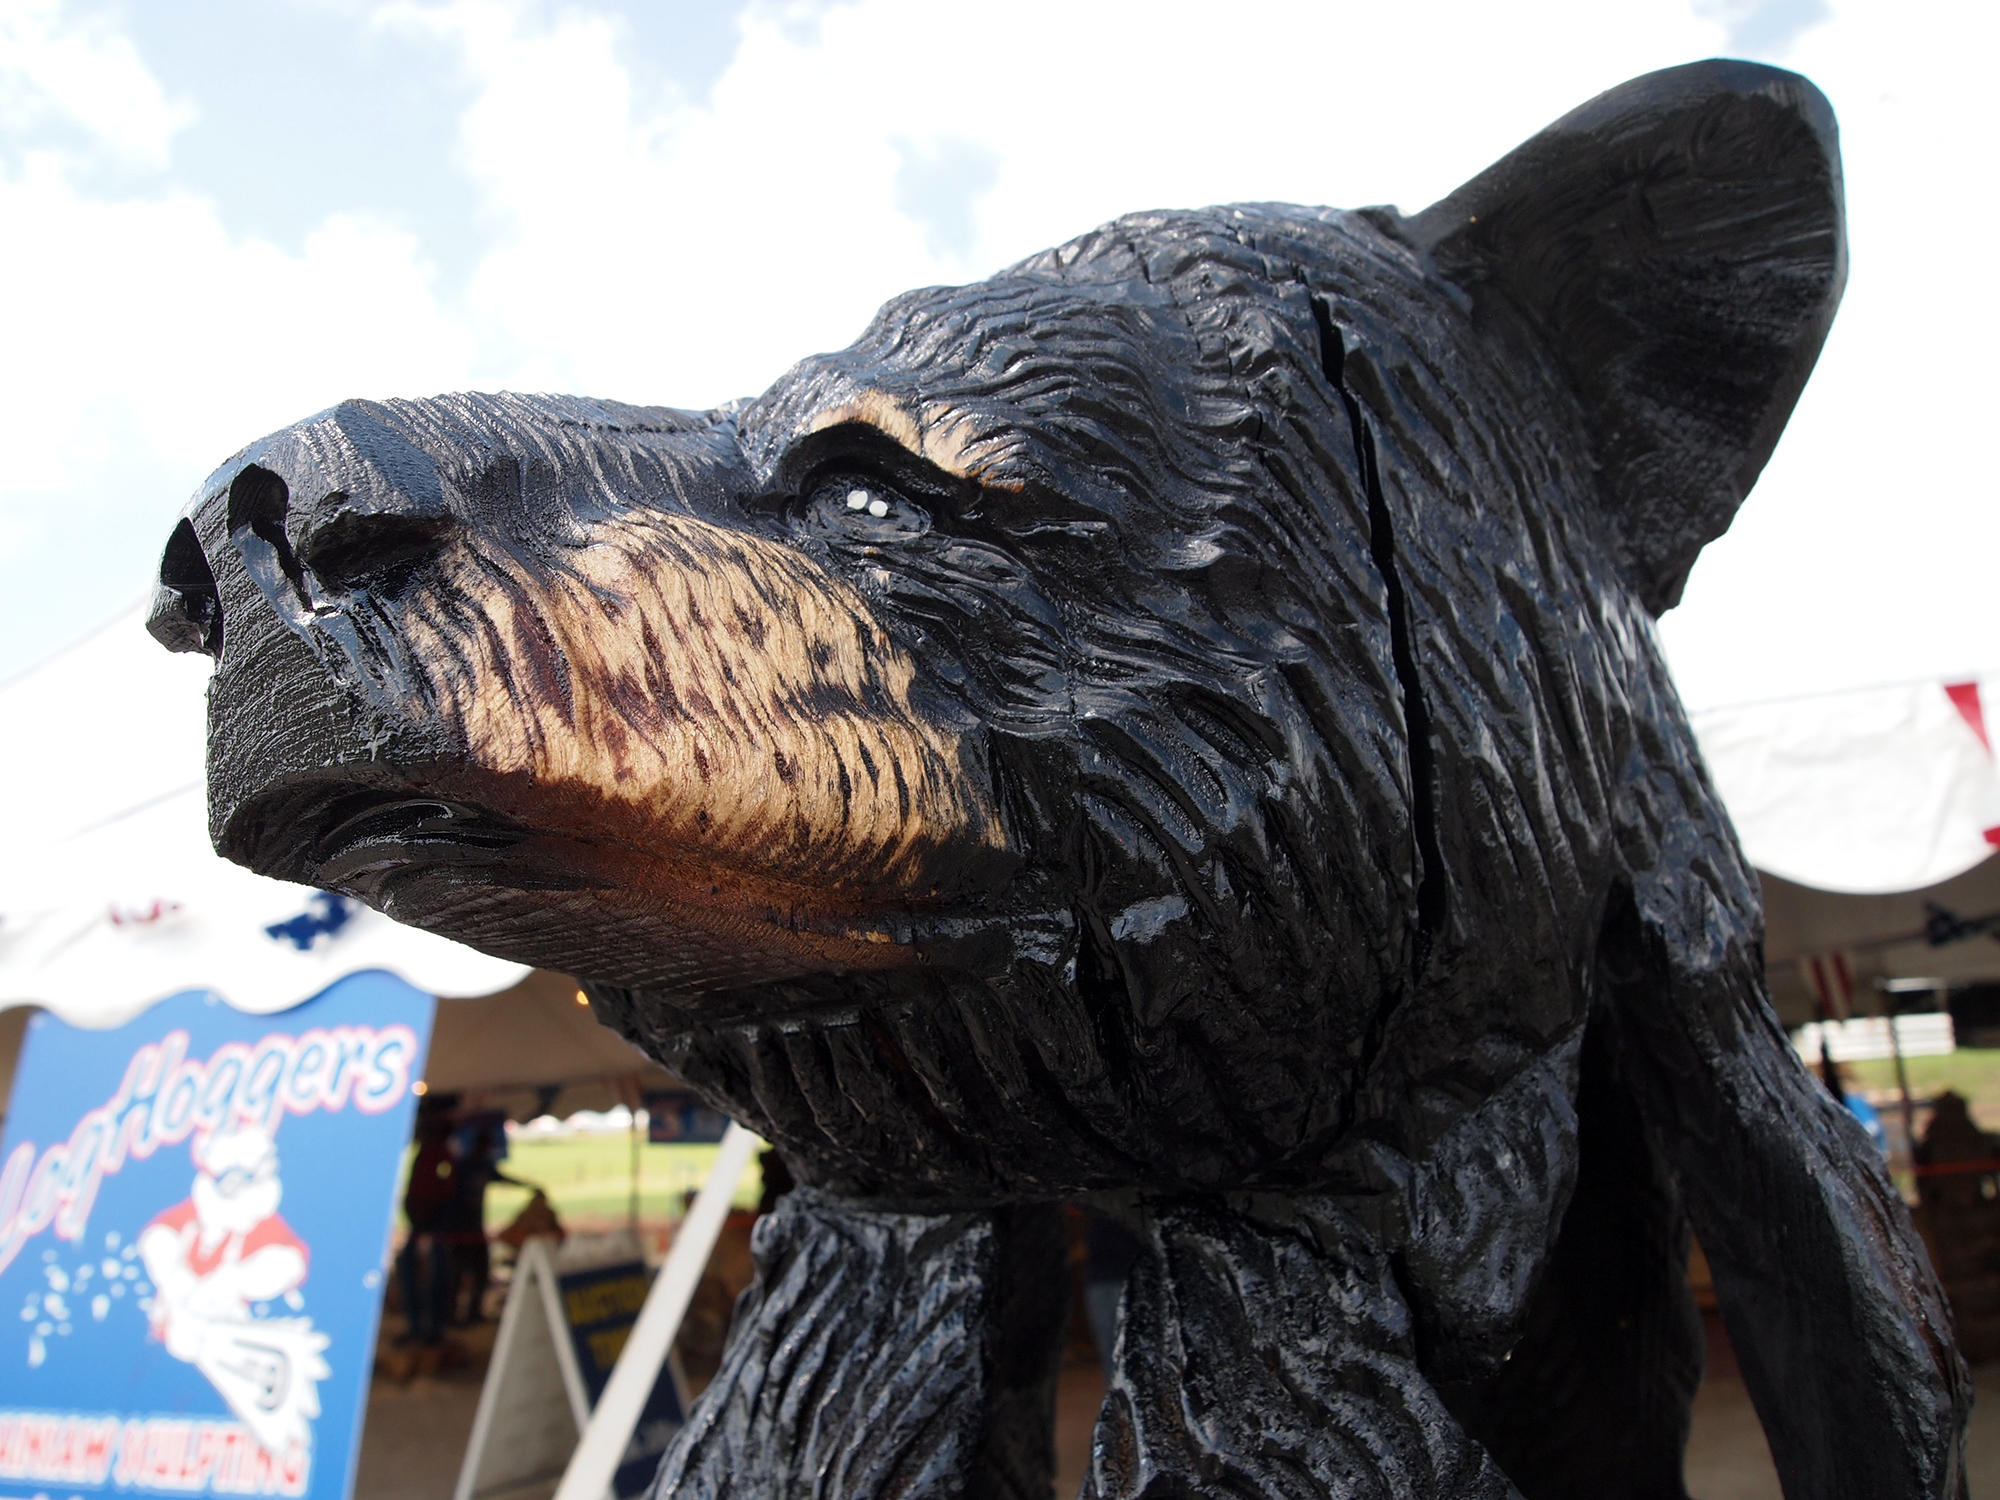 At midwestern state fairs chainsaws create a buzz kcur